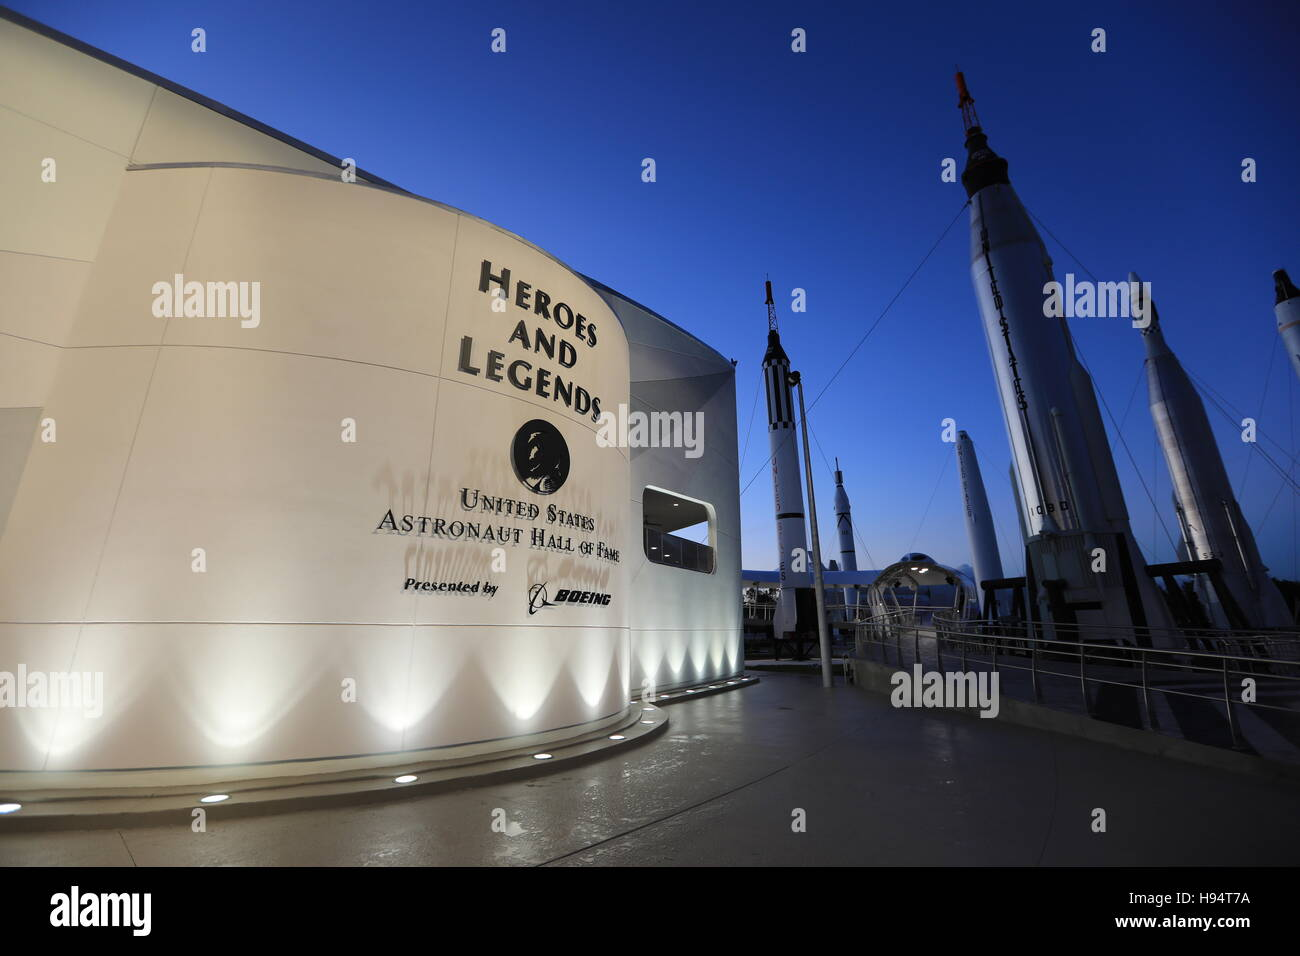 A view of the outside of the Heroes and Legends attraction at the Kennedy Space Center Visitor Complex U.S. Astronaut - Stock Image